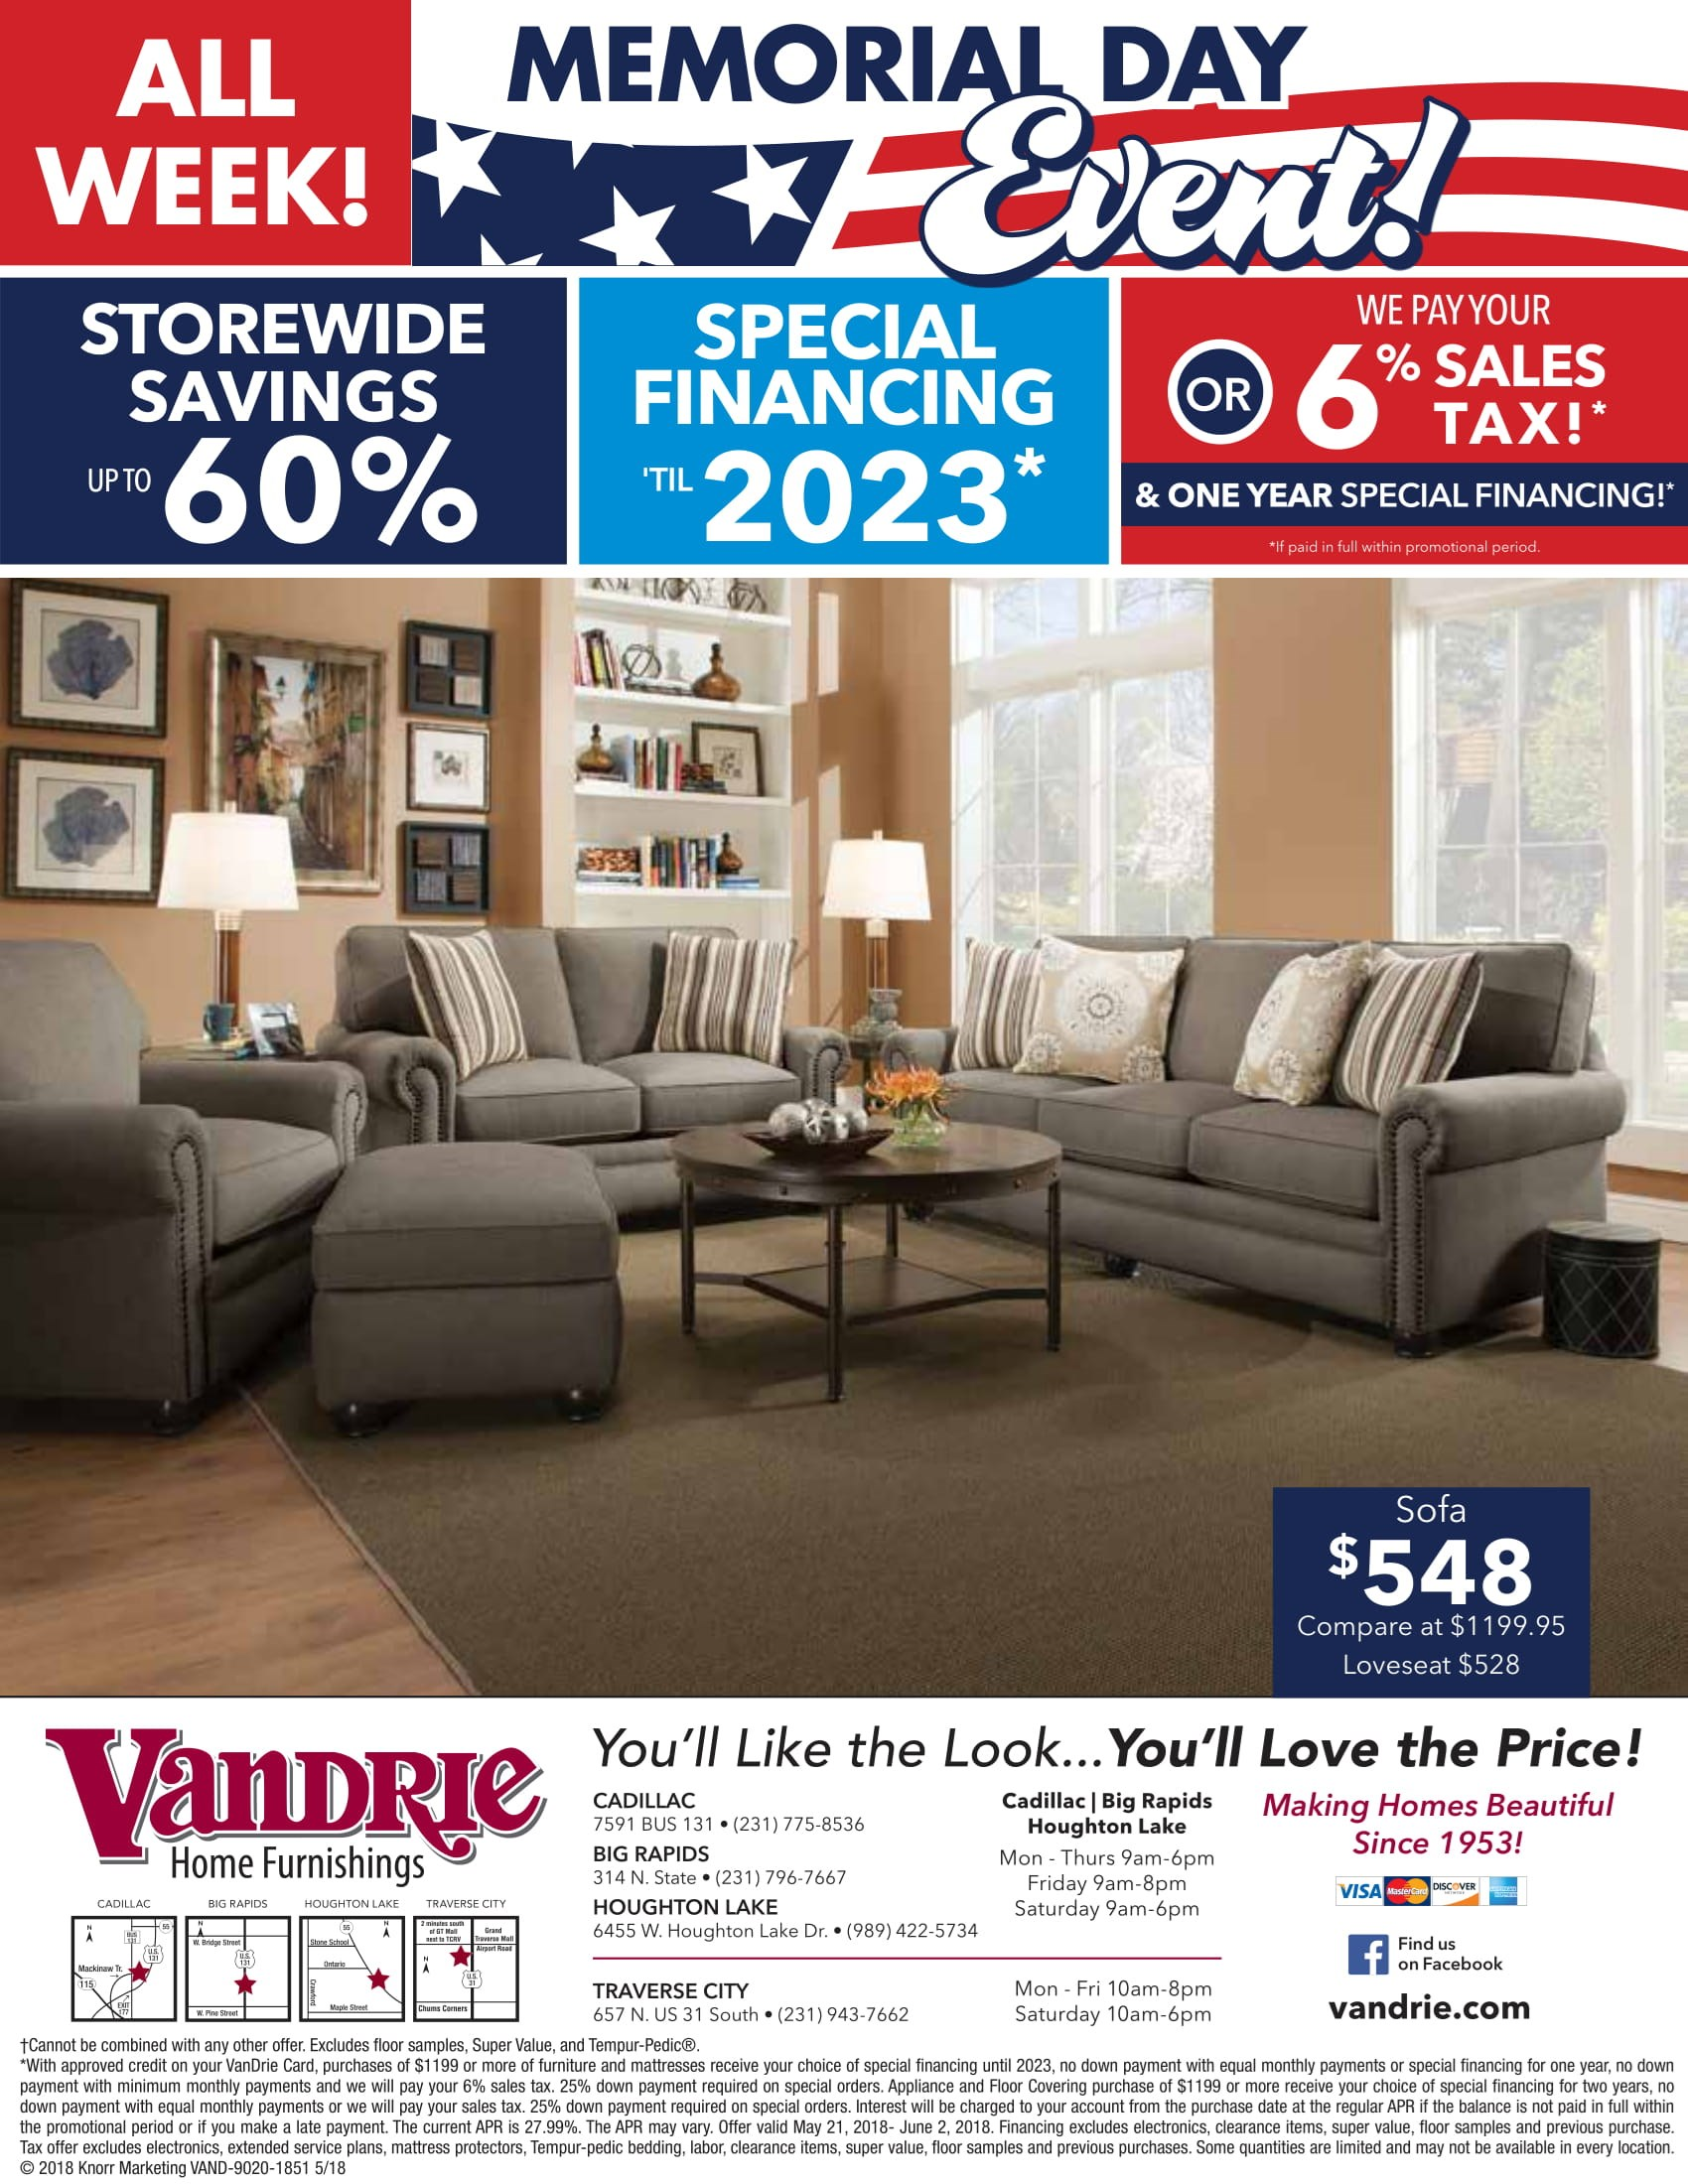 Living Room Furniture Vandrie Home Furnishings Cadillac